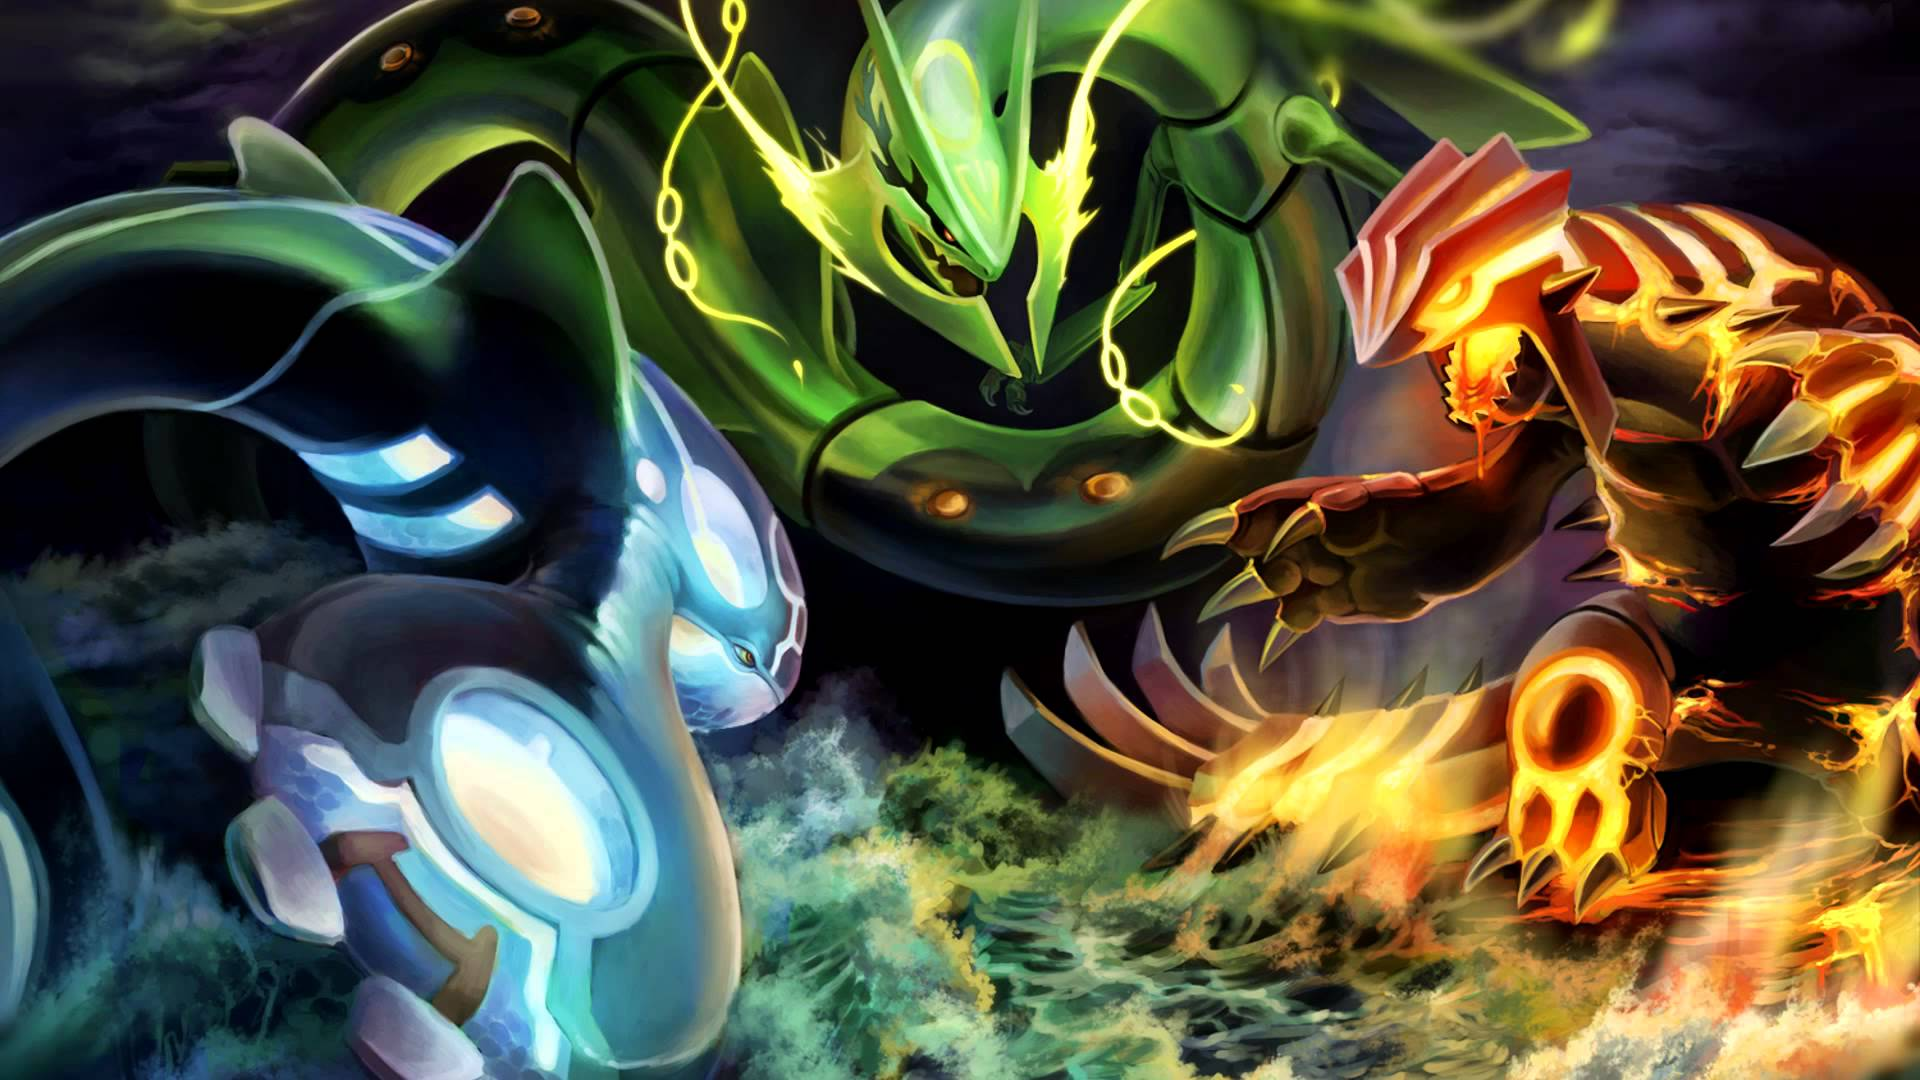 Cool Legendary Pokemon Wallpapers - Top Free Cool Legendary